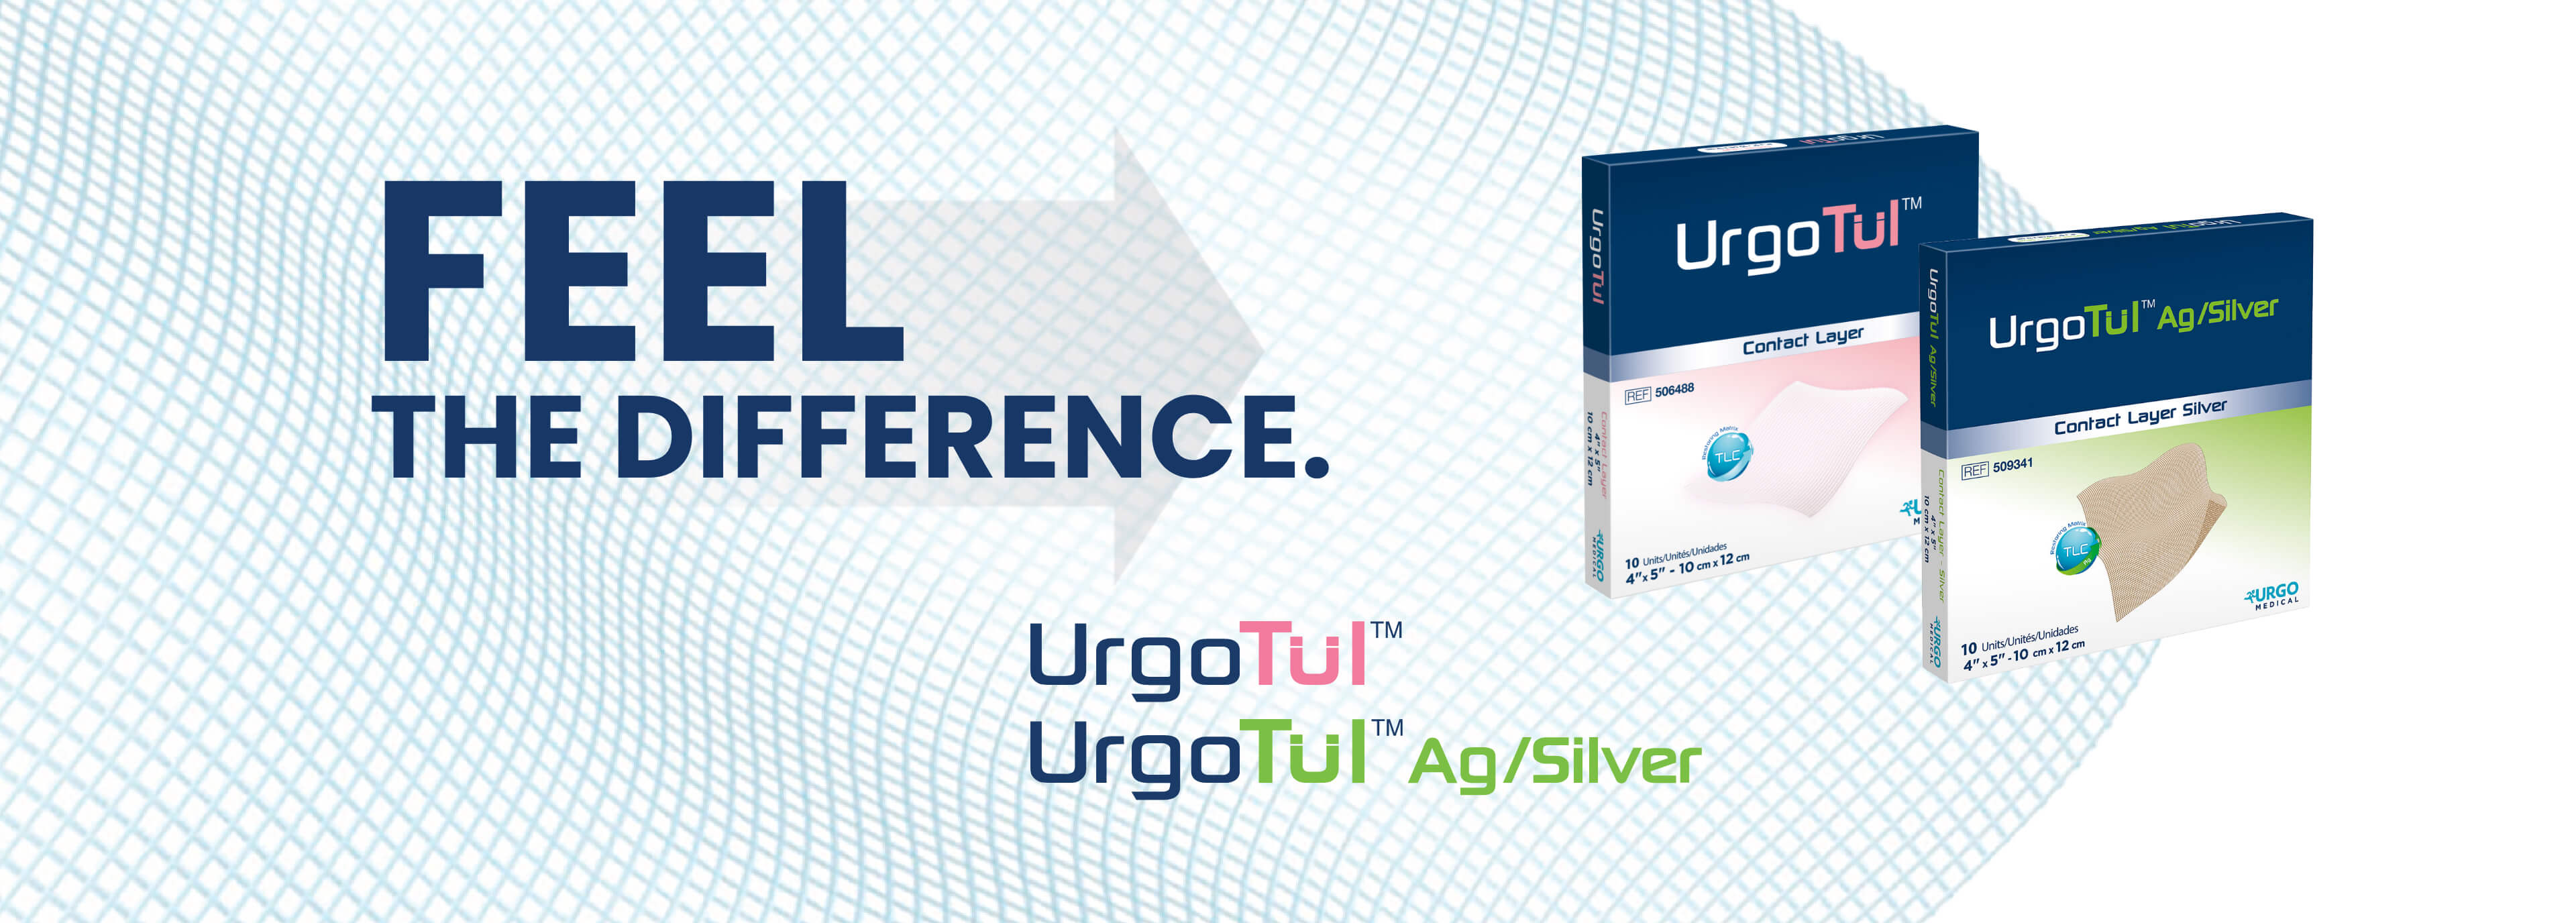 FEEL THE DIFFERENCE. UrgoTul brand packaging.